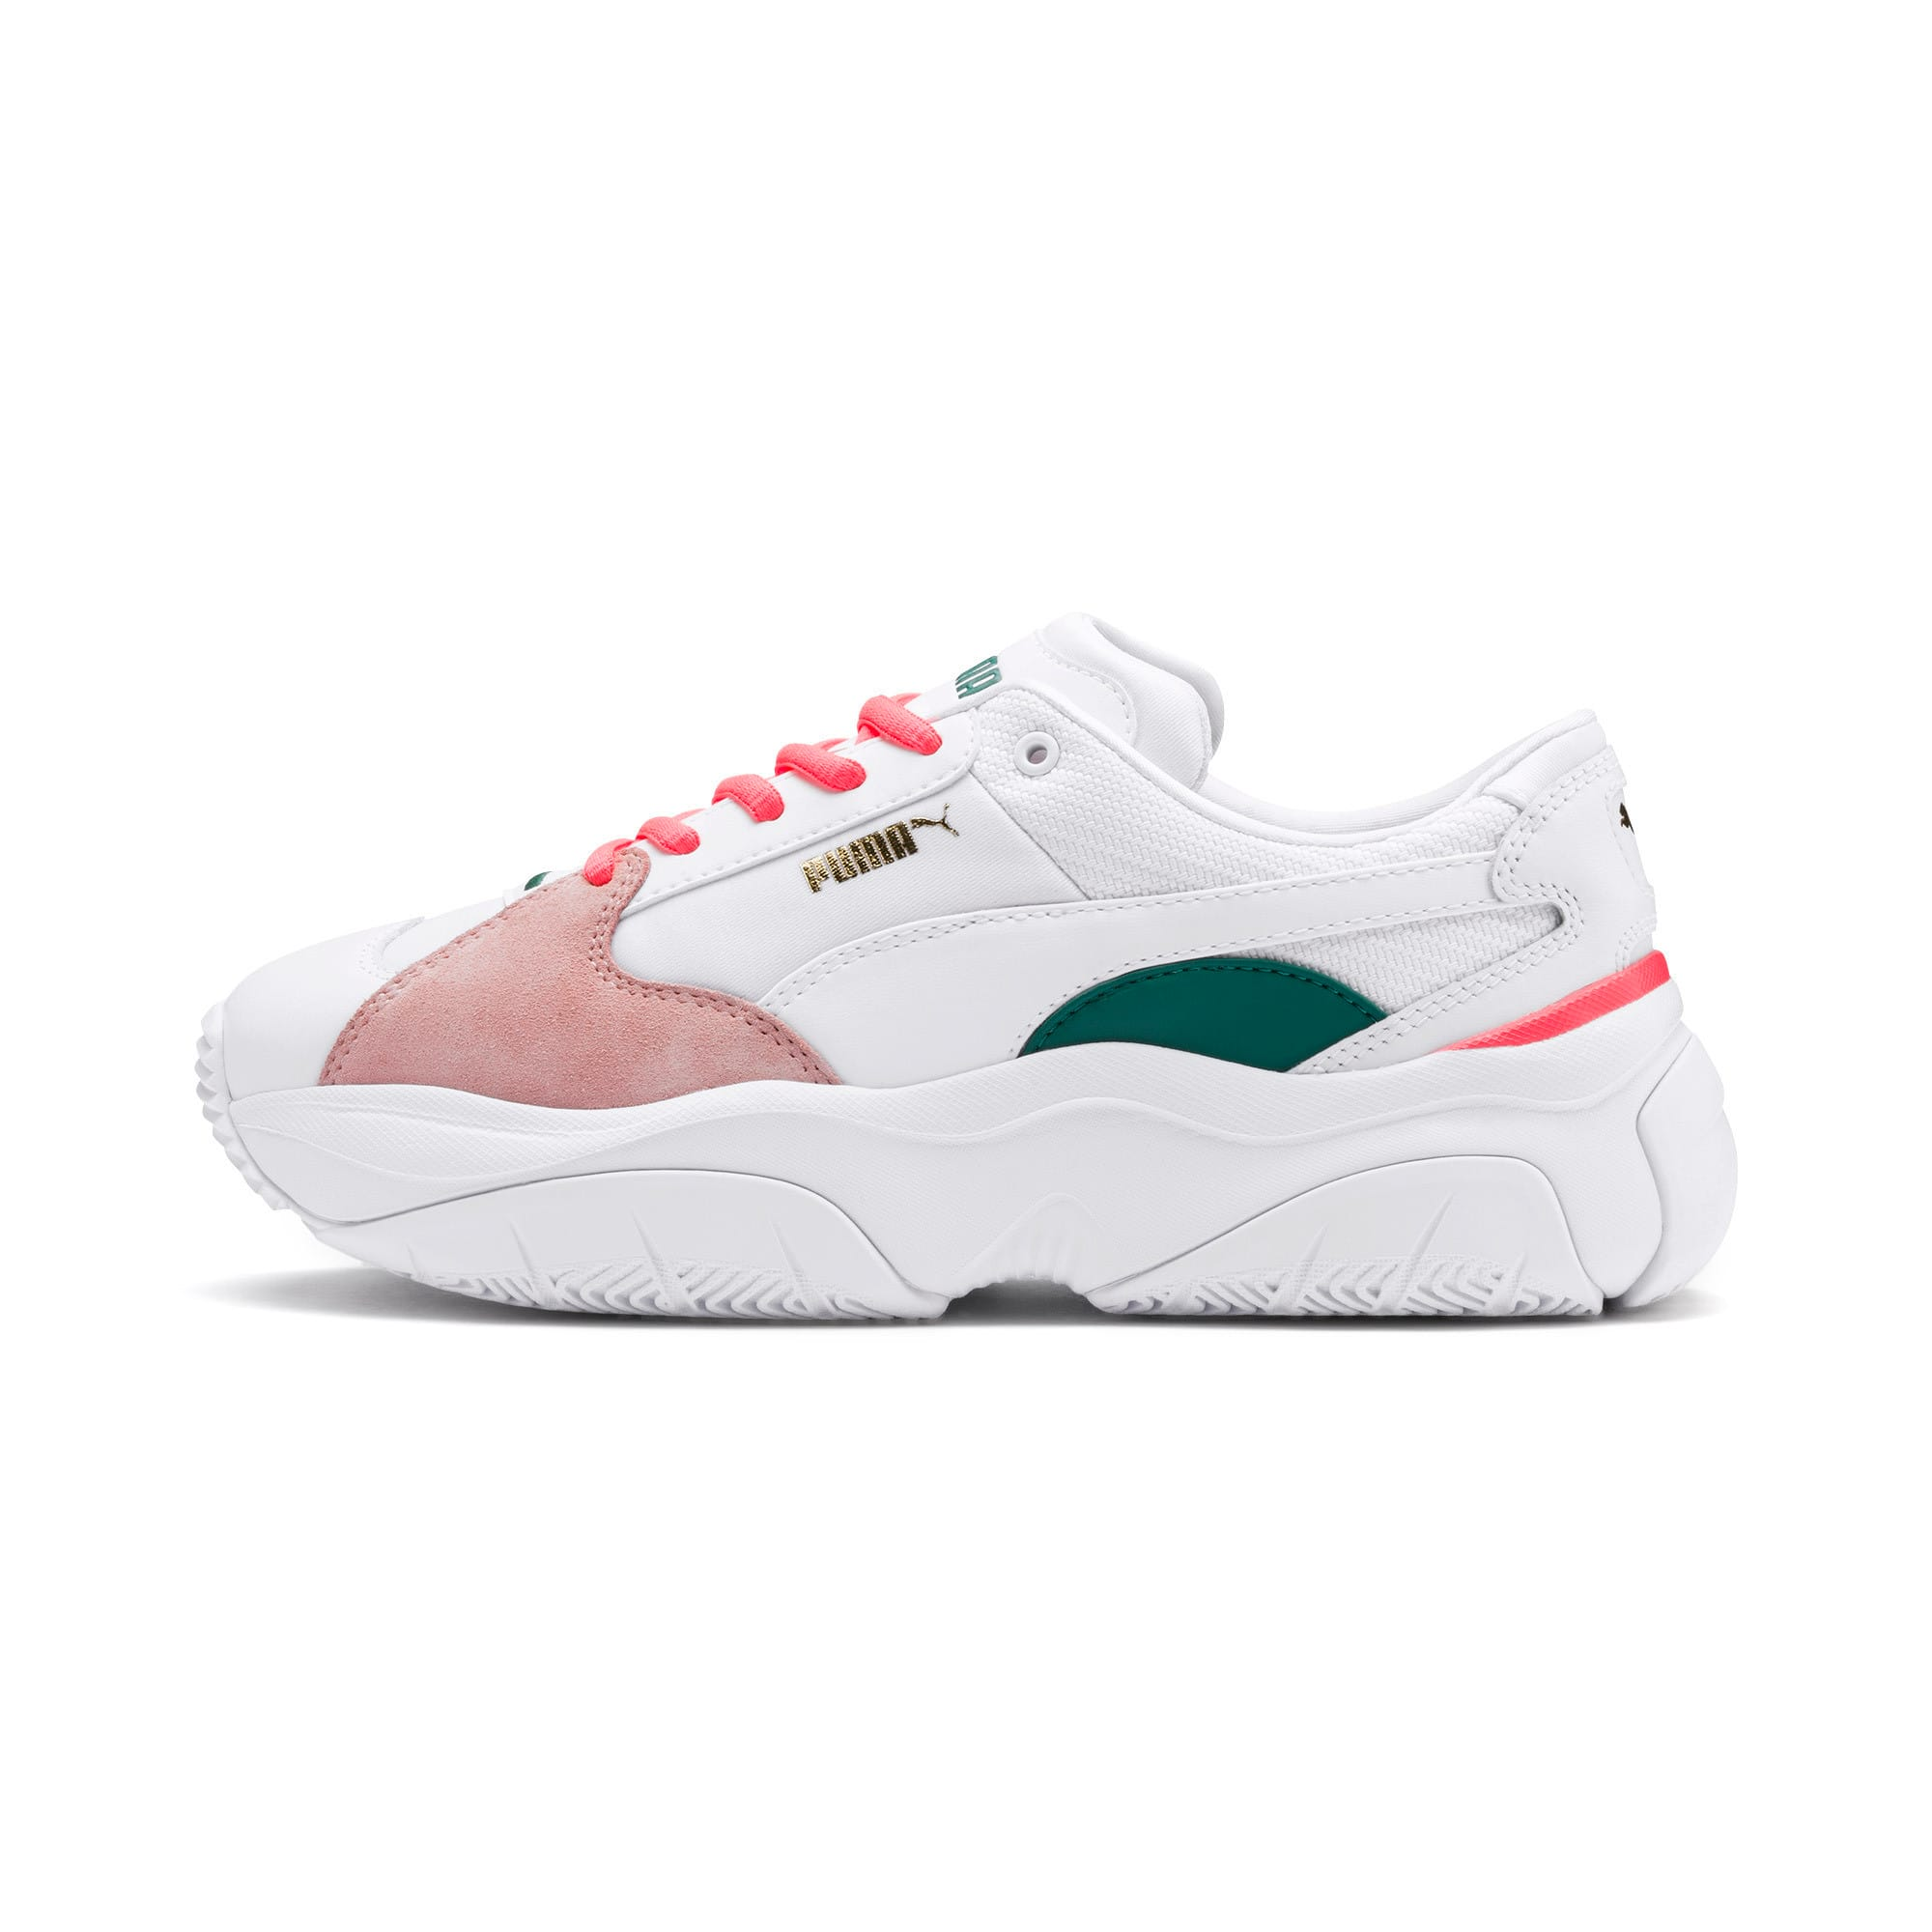 Thumbnail 1 of STORM.Y Damen Sneaker, Puma White-Gray Violet, medium